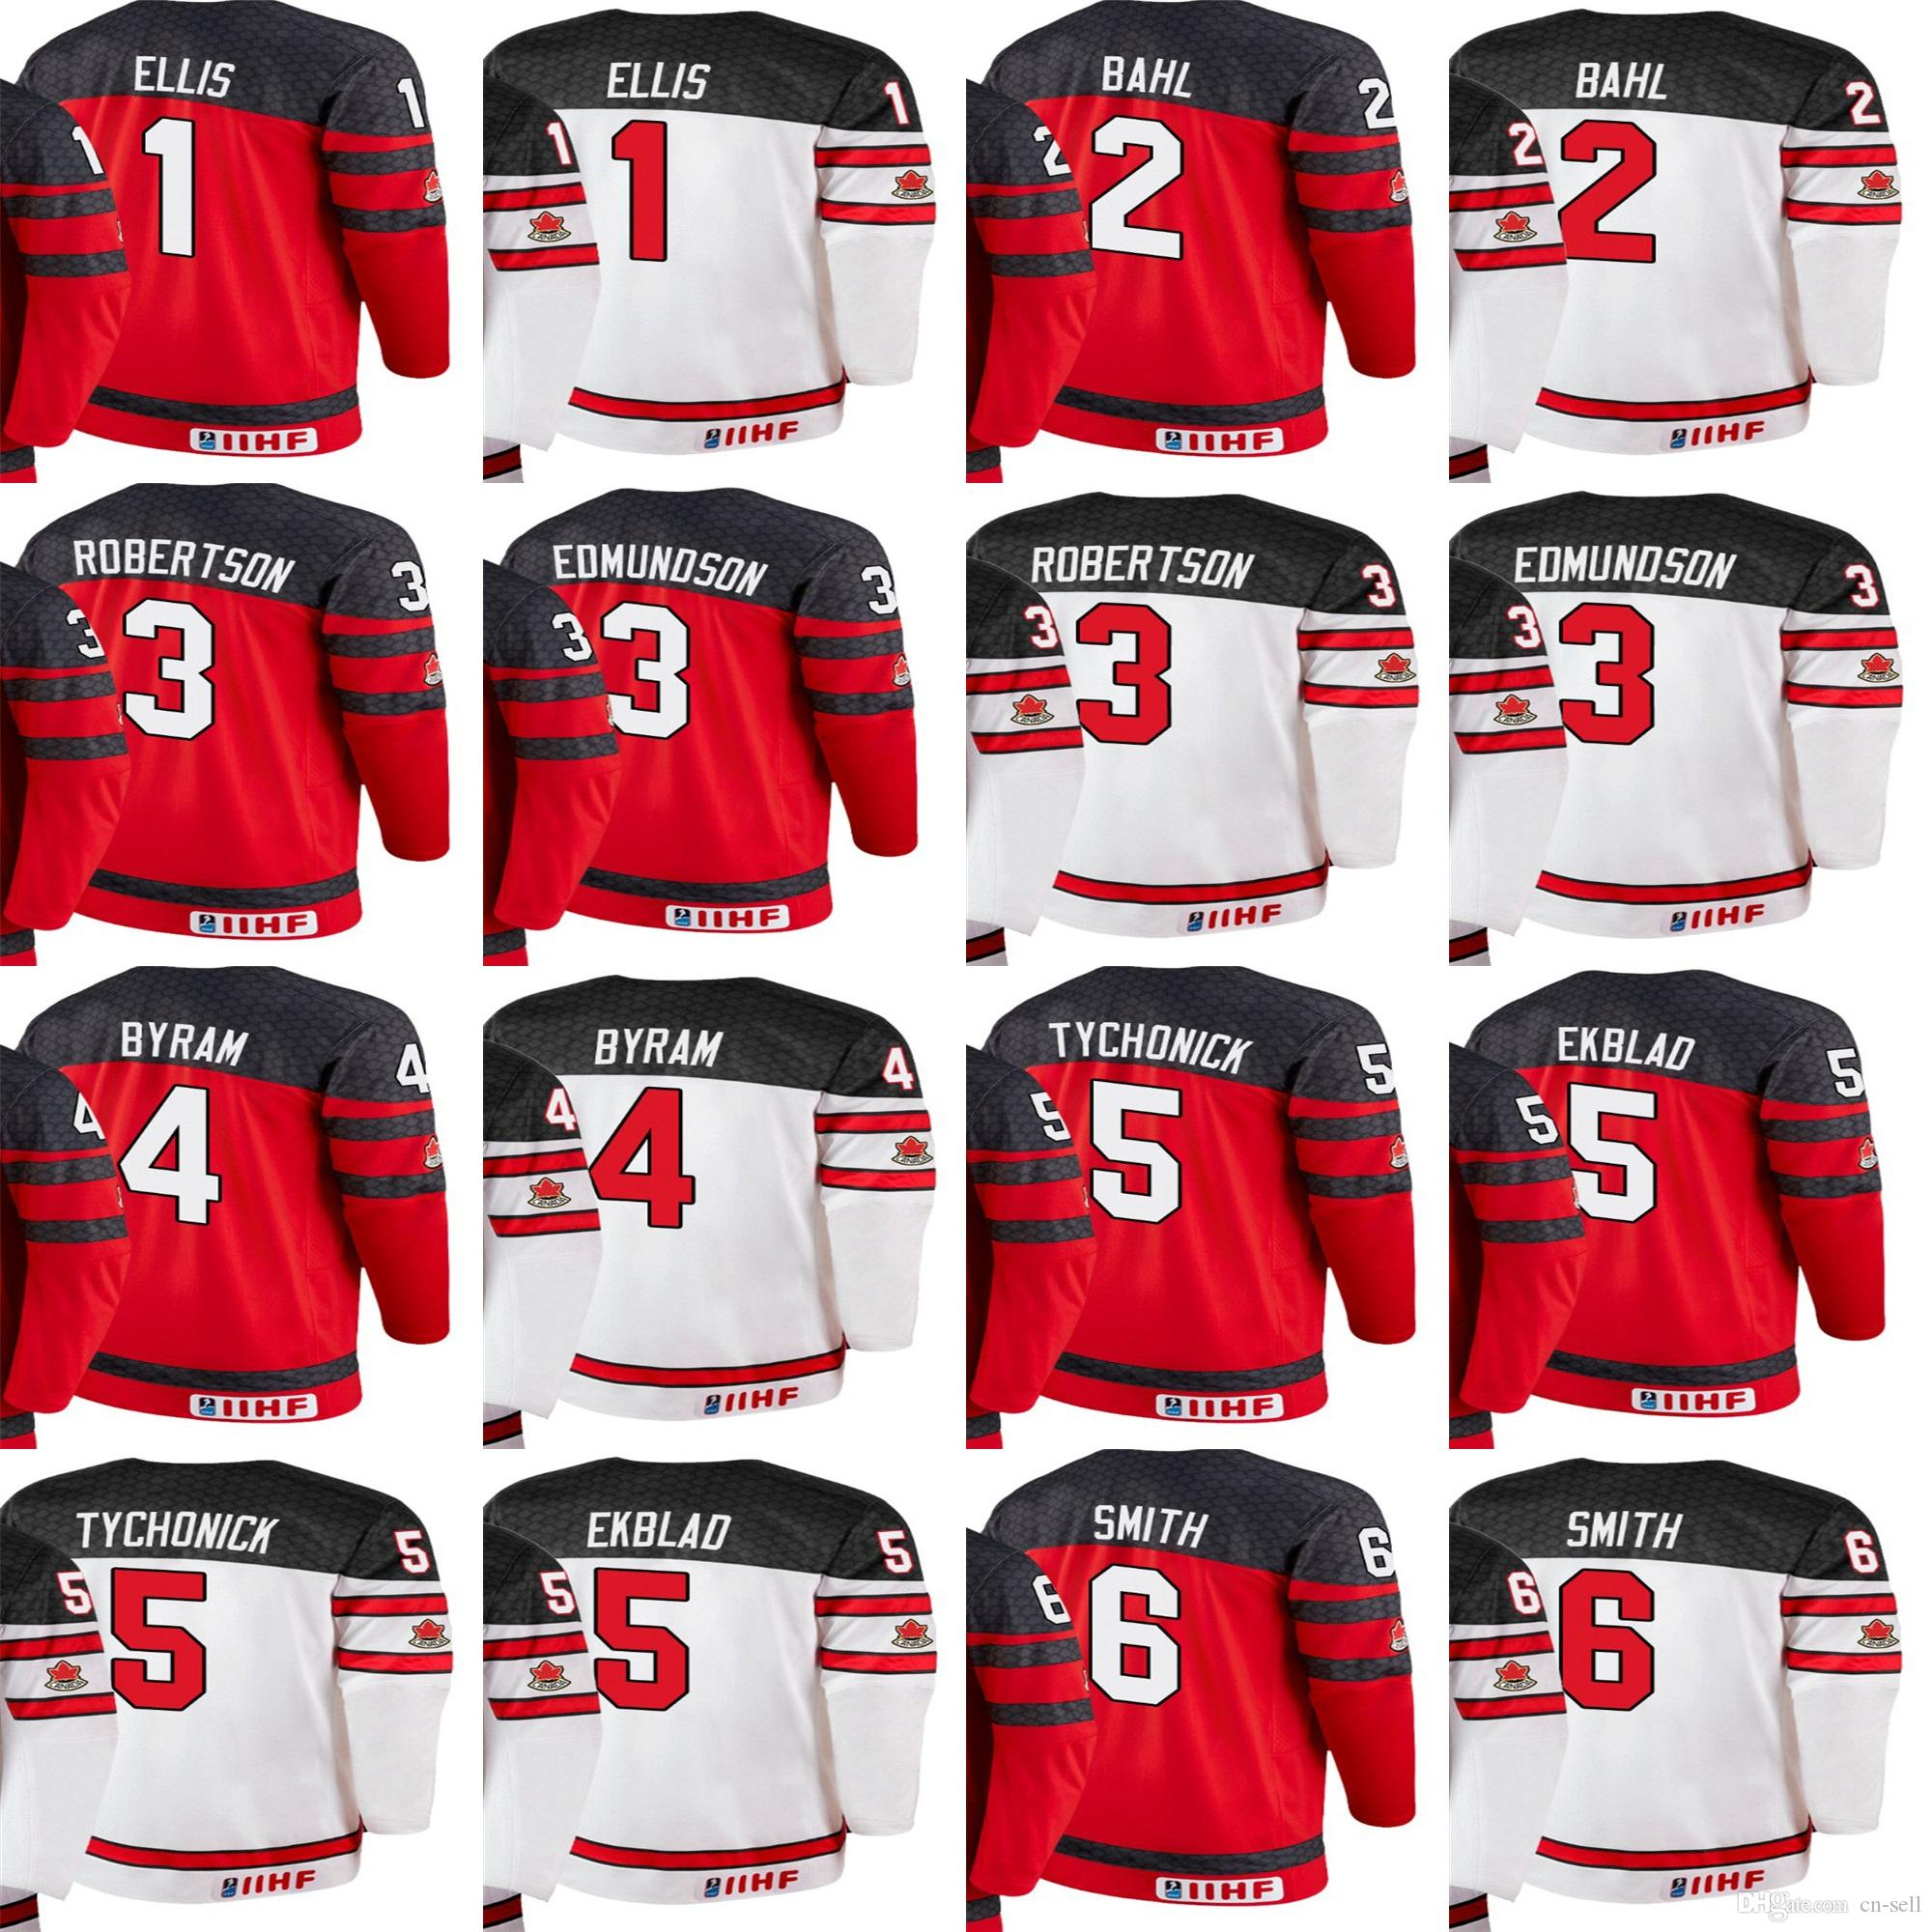 2019 Custom 2018 Team Colten Ellis Bahl Robertson Edmundson Byram Tychonick  Ekblad 6 Ty Smith IIHF World Championship Hoodie Jerseys Red From Cn Sell d2d6ca60adb